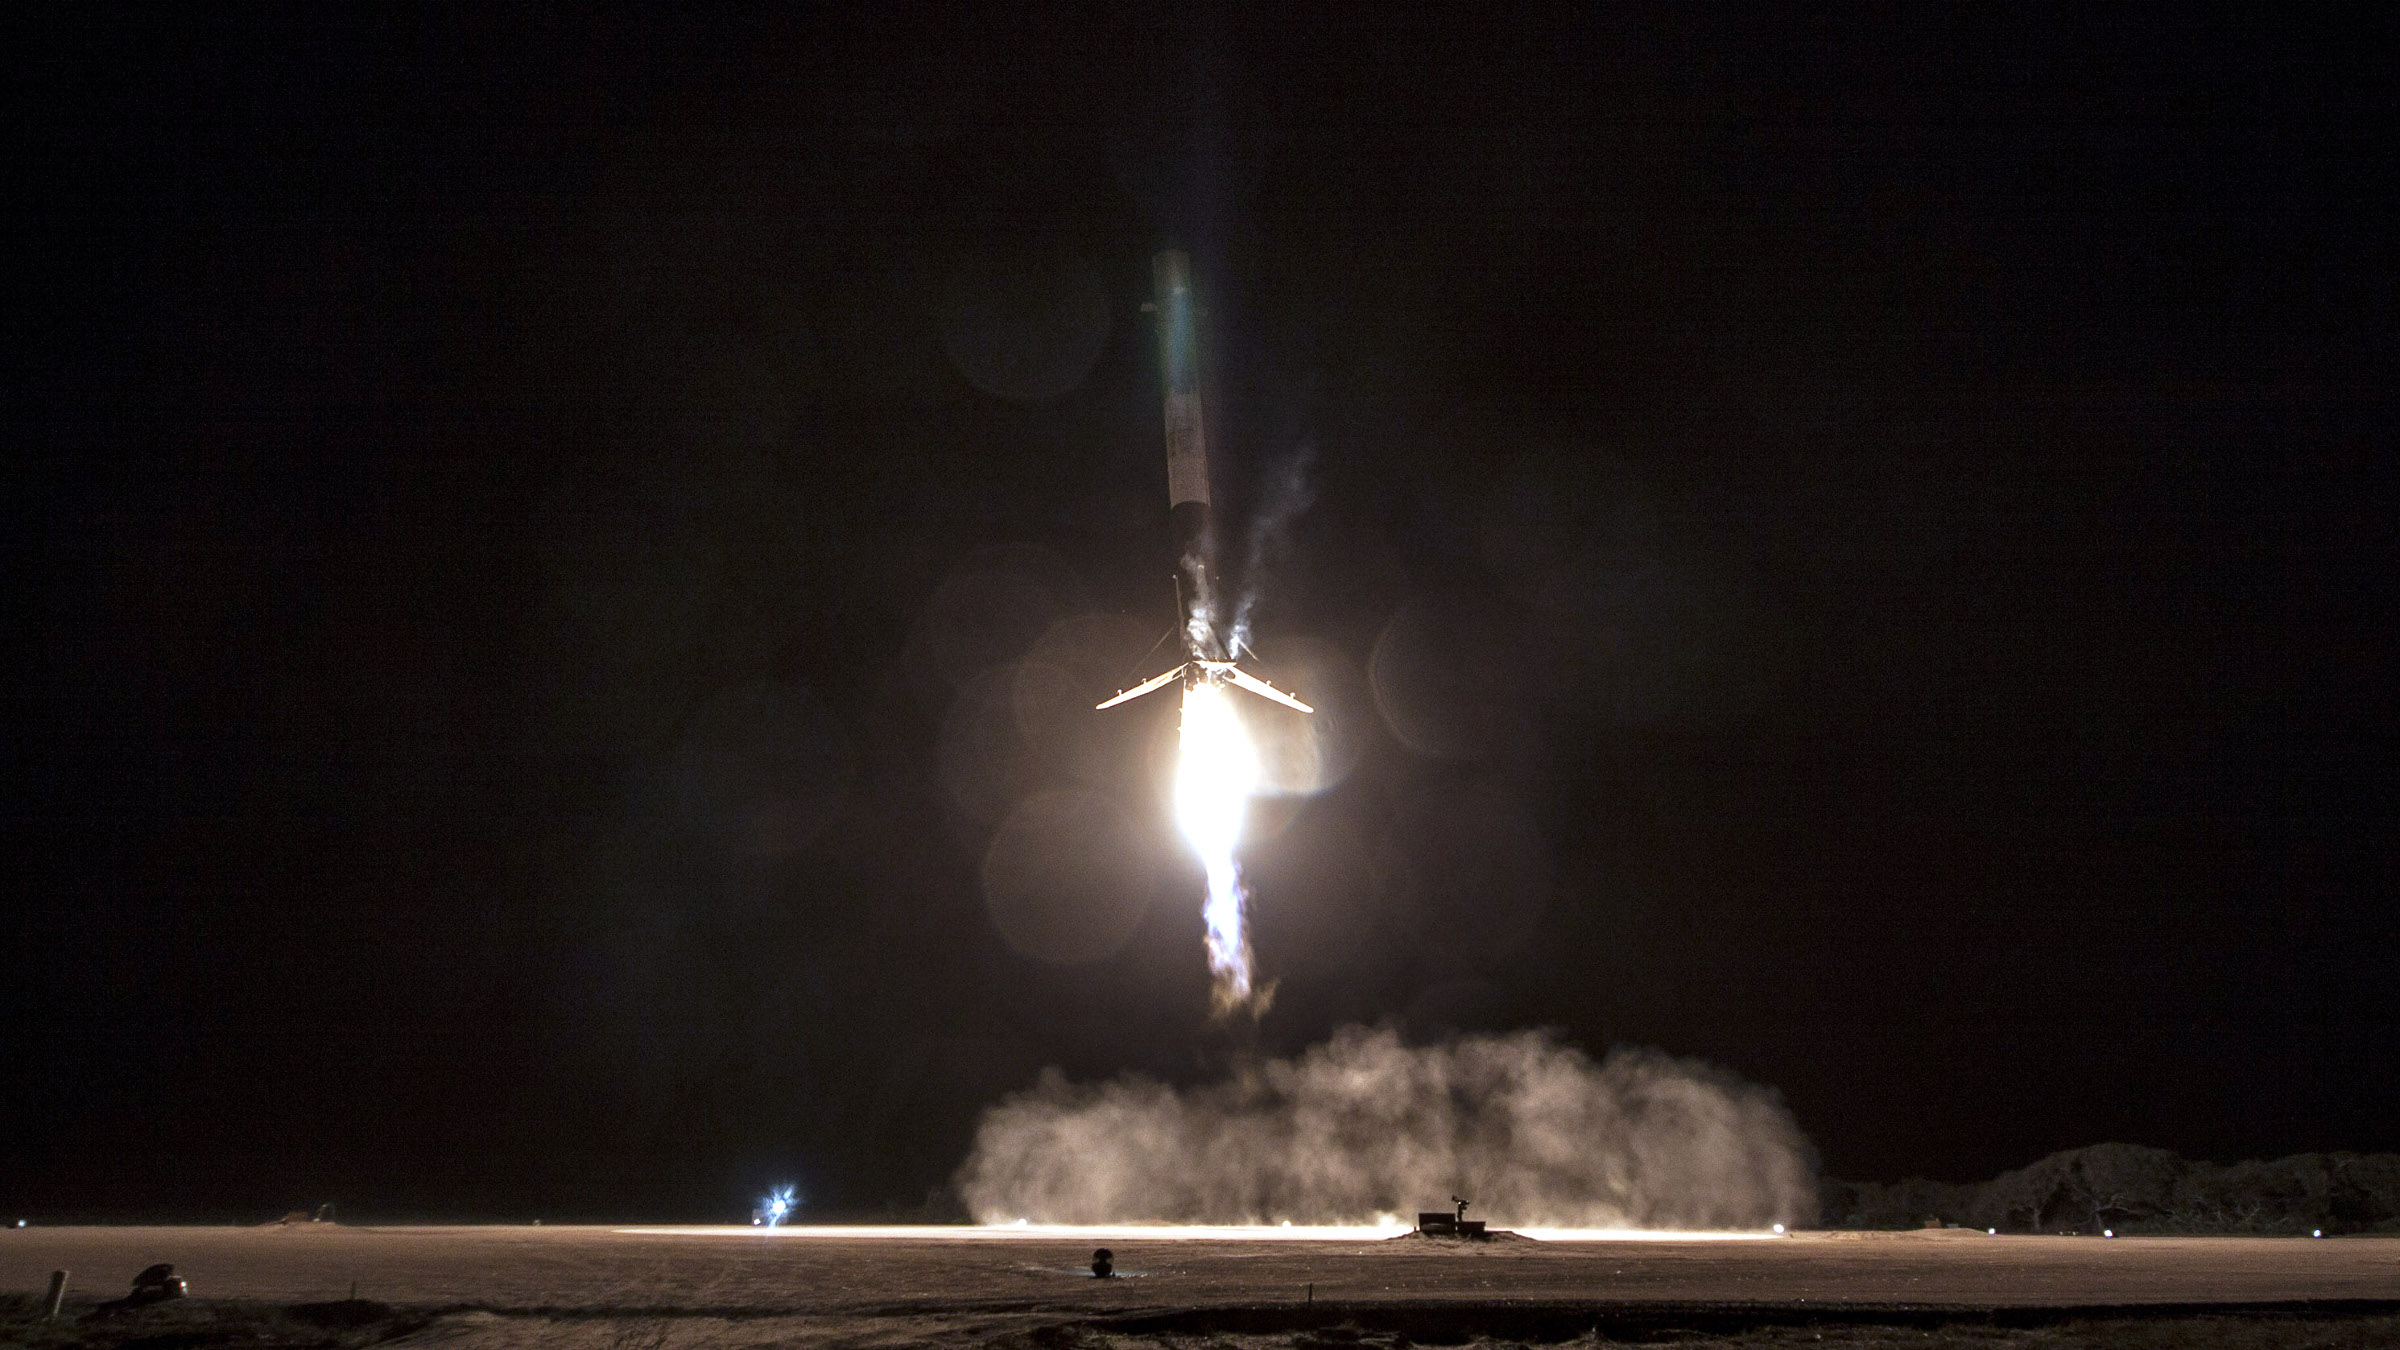 A SpaceX Falcon 9 first stage touches down after flight.